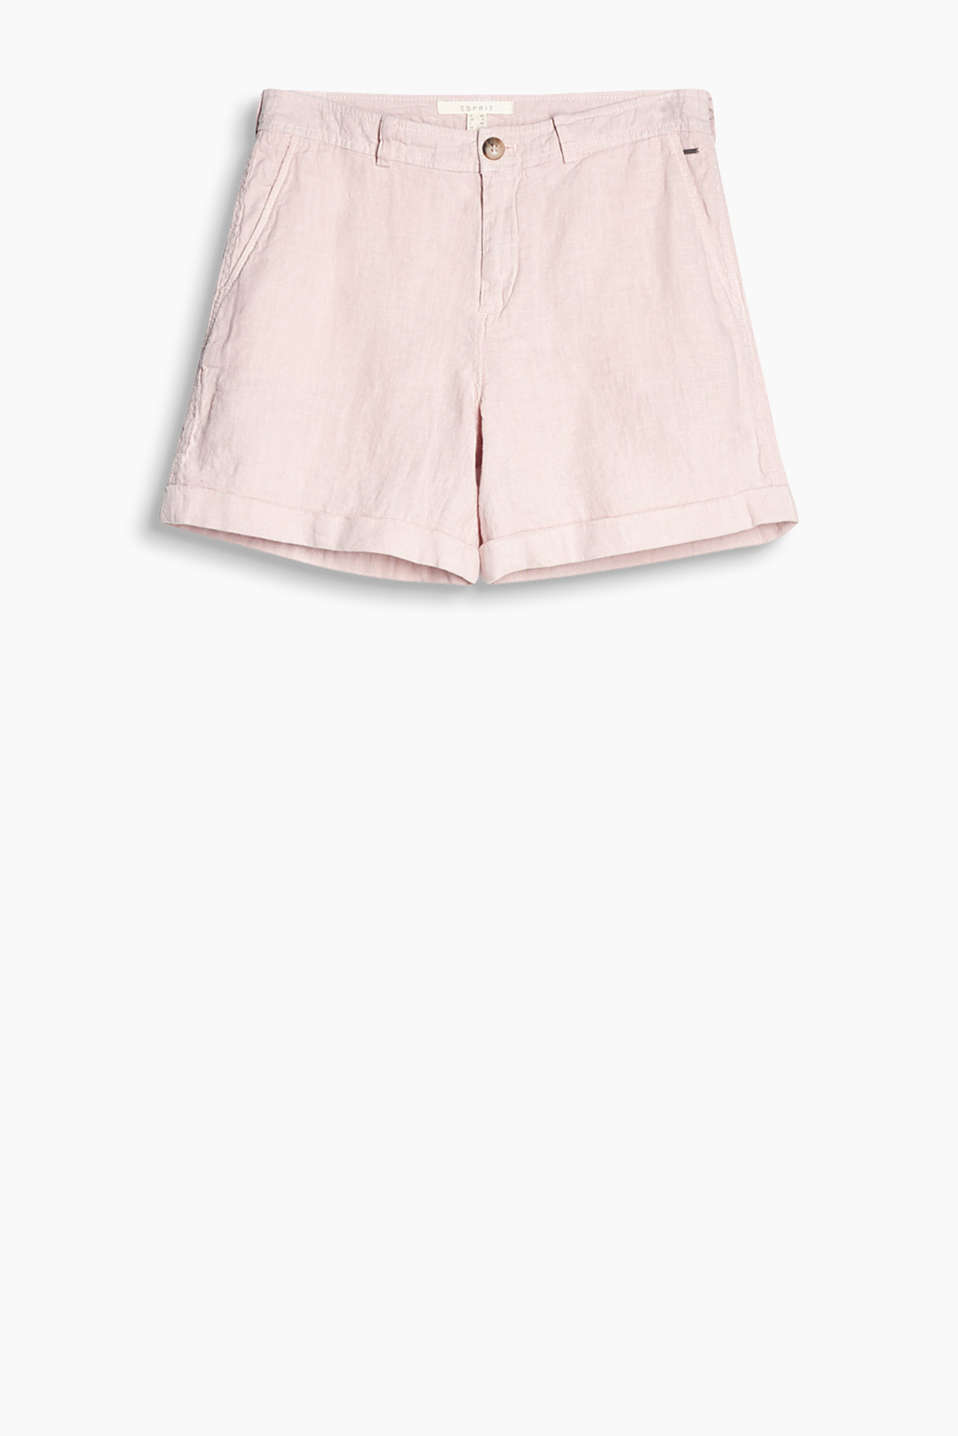 Our summer fave! Loose-cut shorts in airy, soft linen